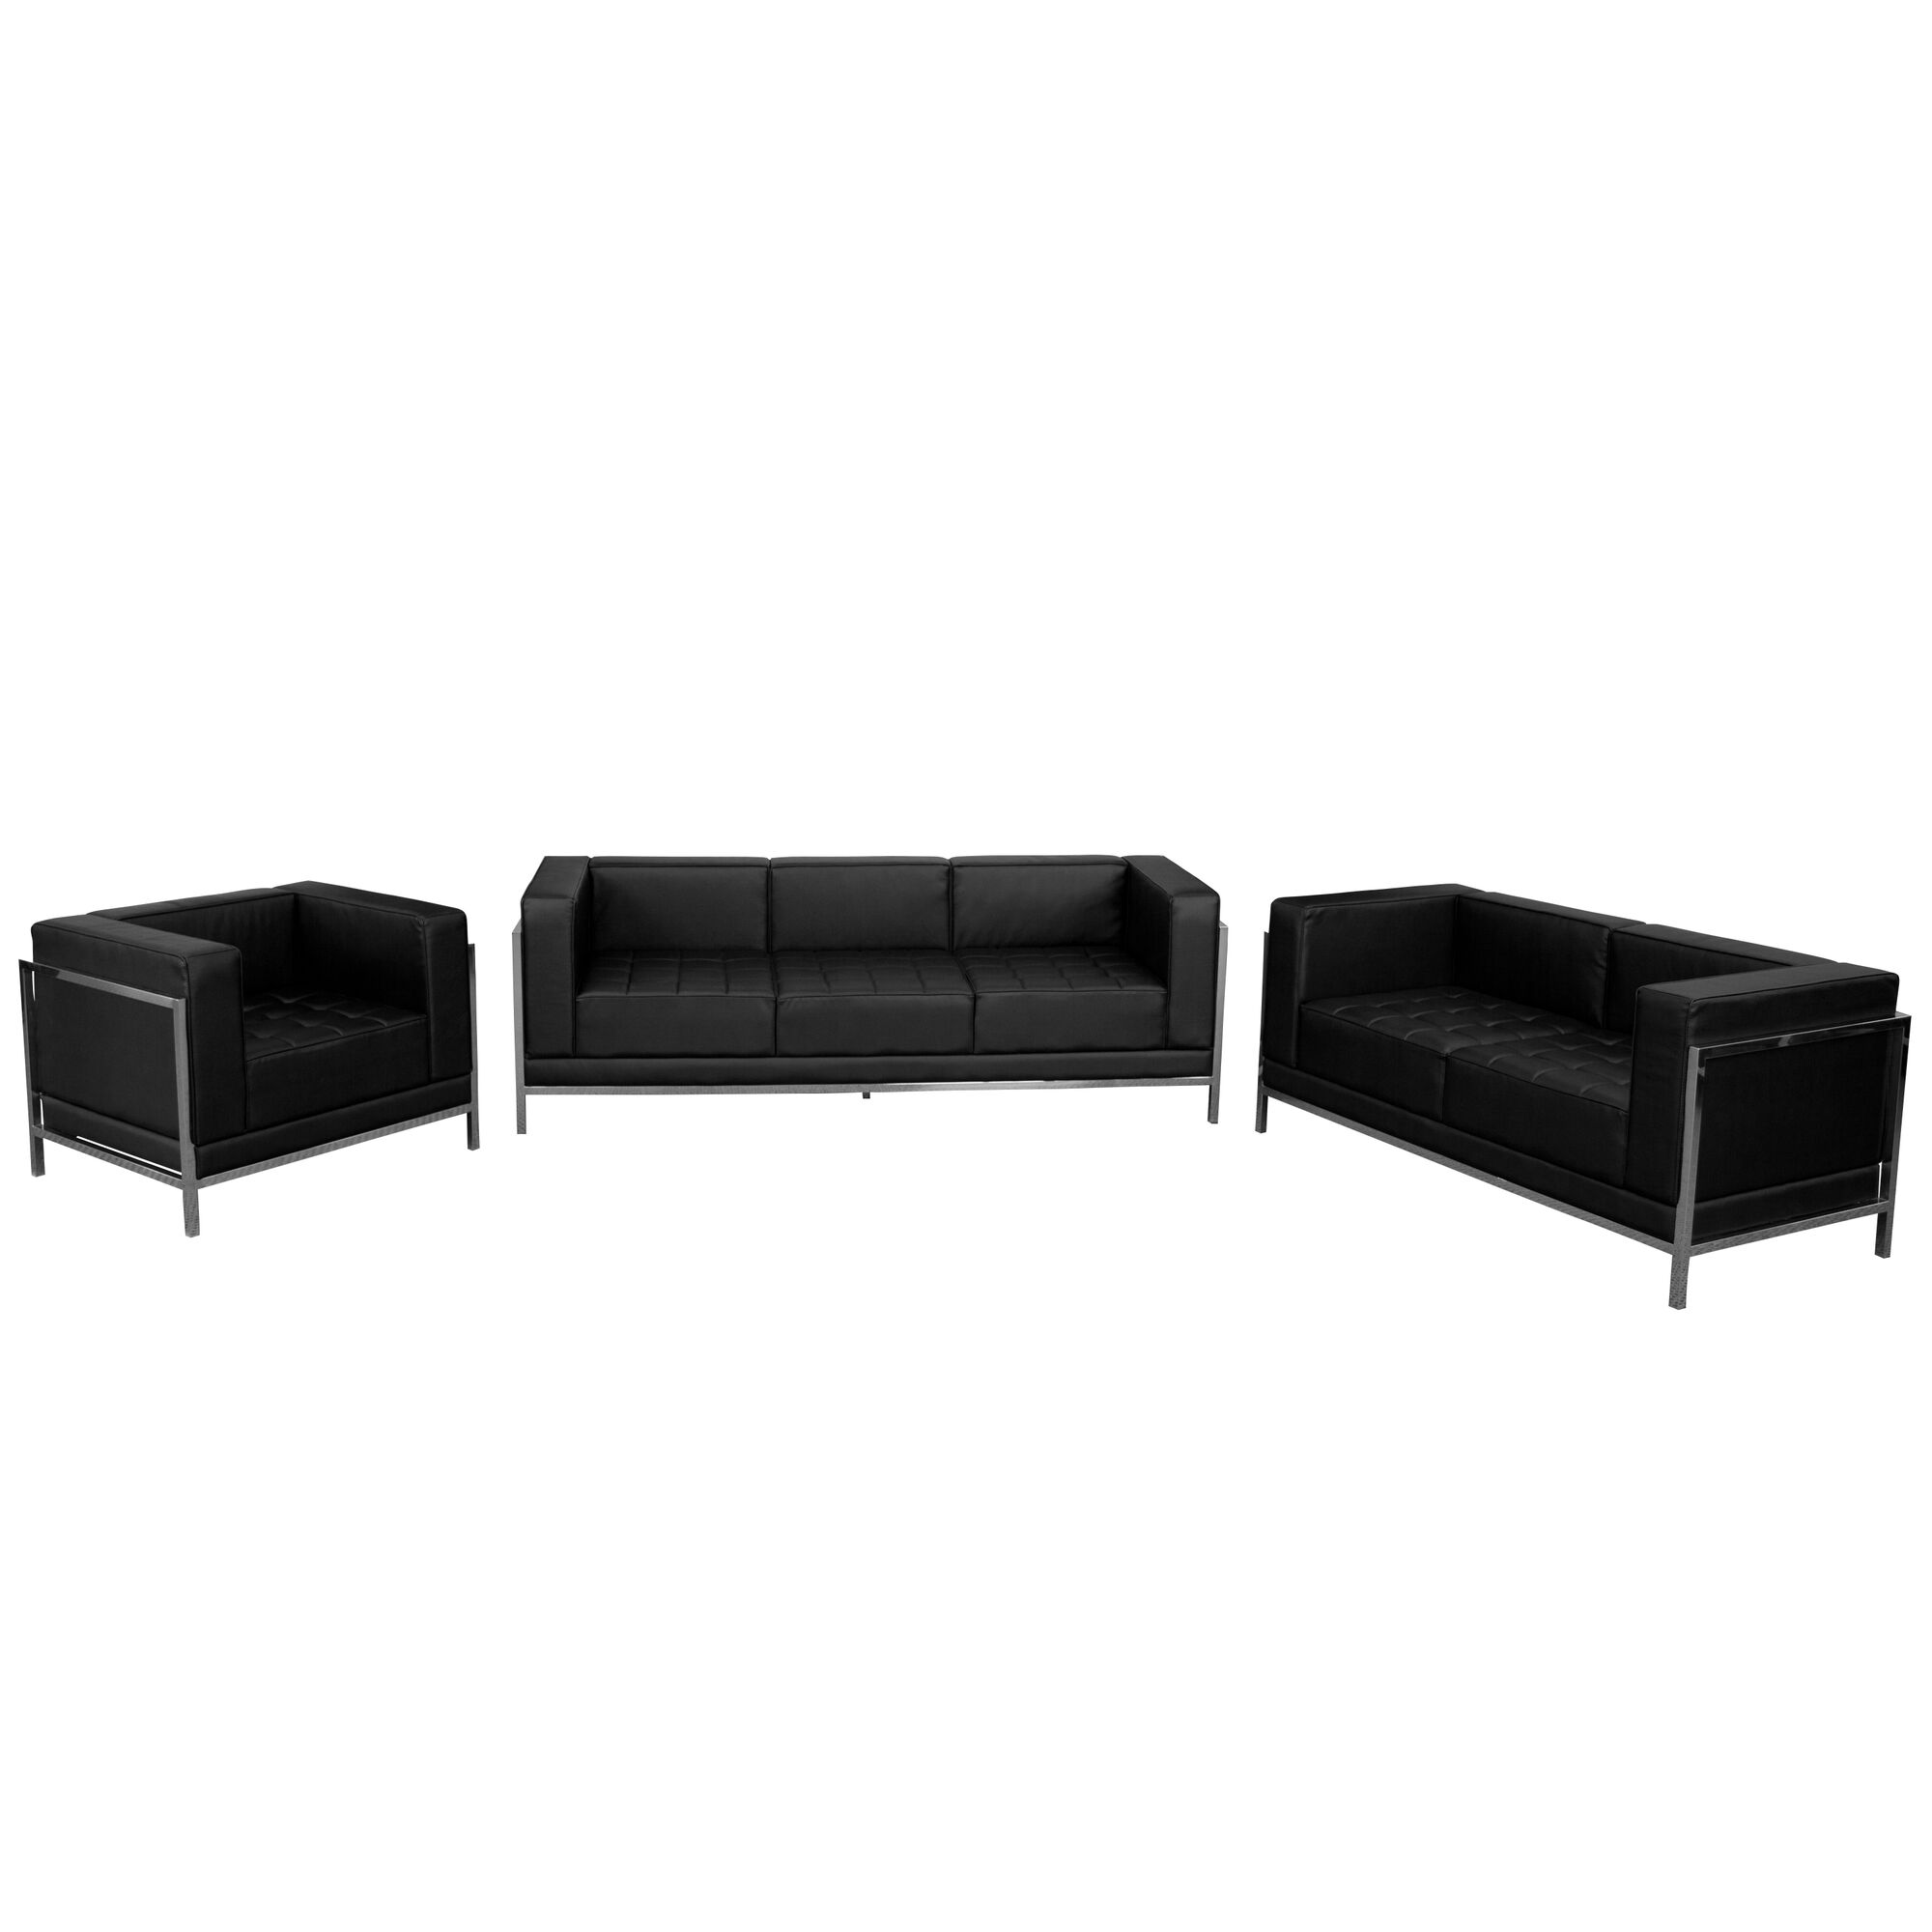 Our Hercules Imagination Series Black Leather 3 Piece Sofa